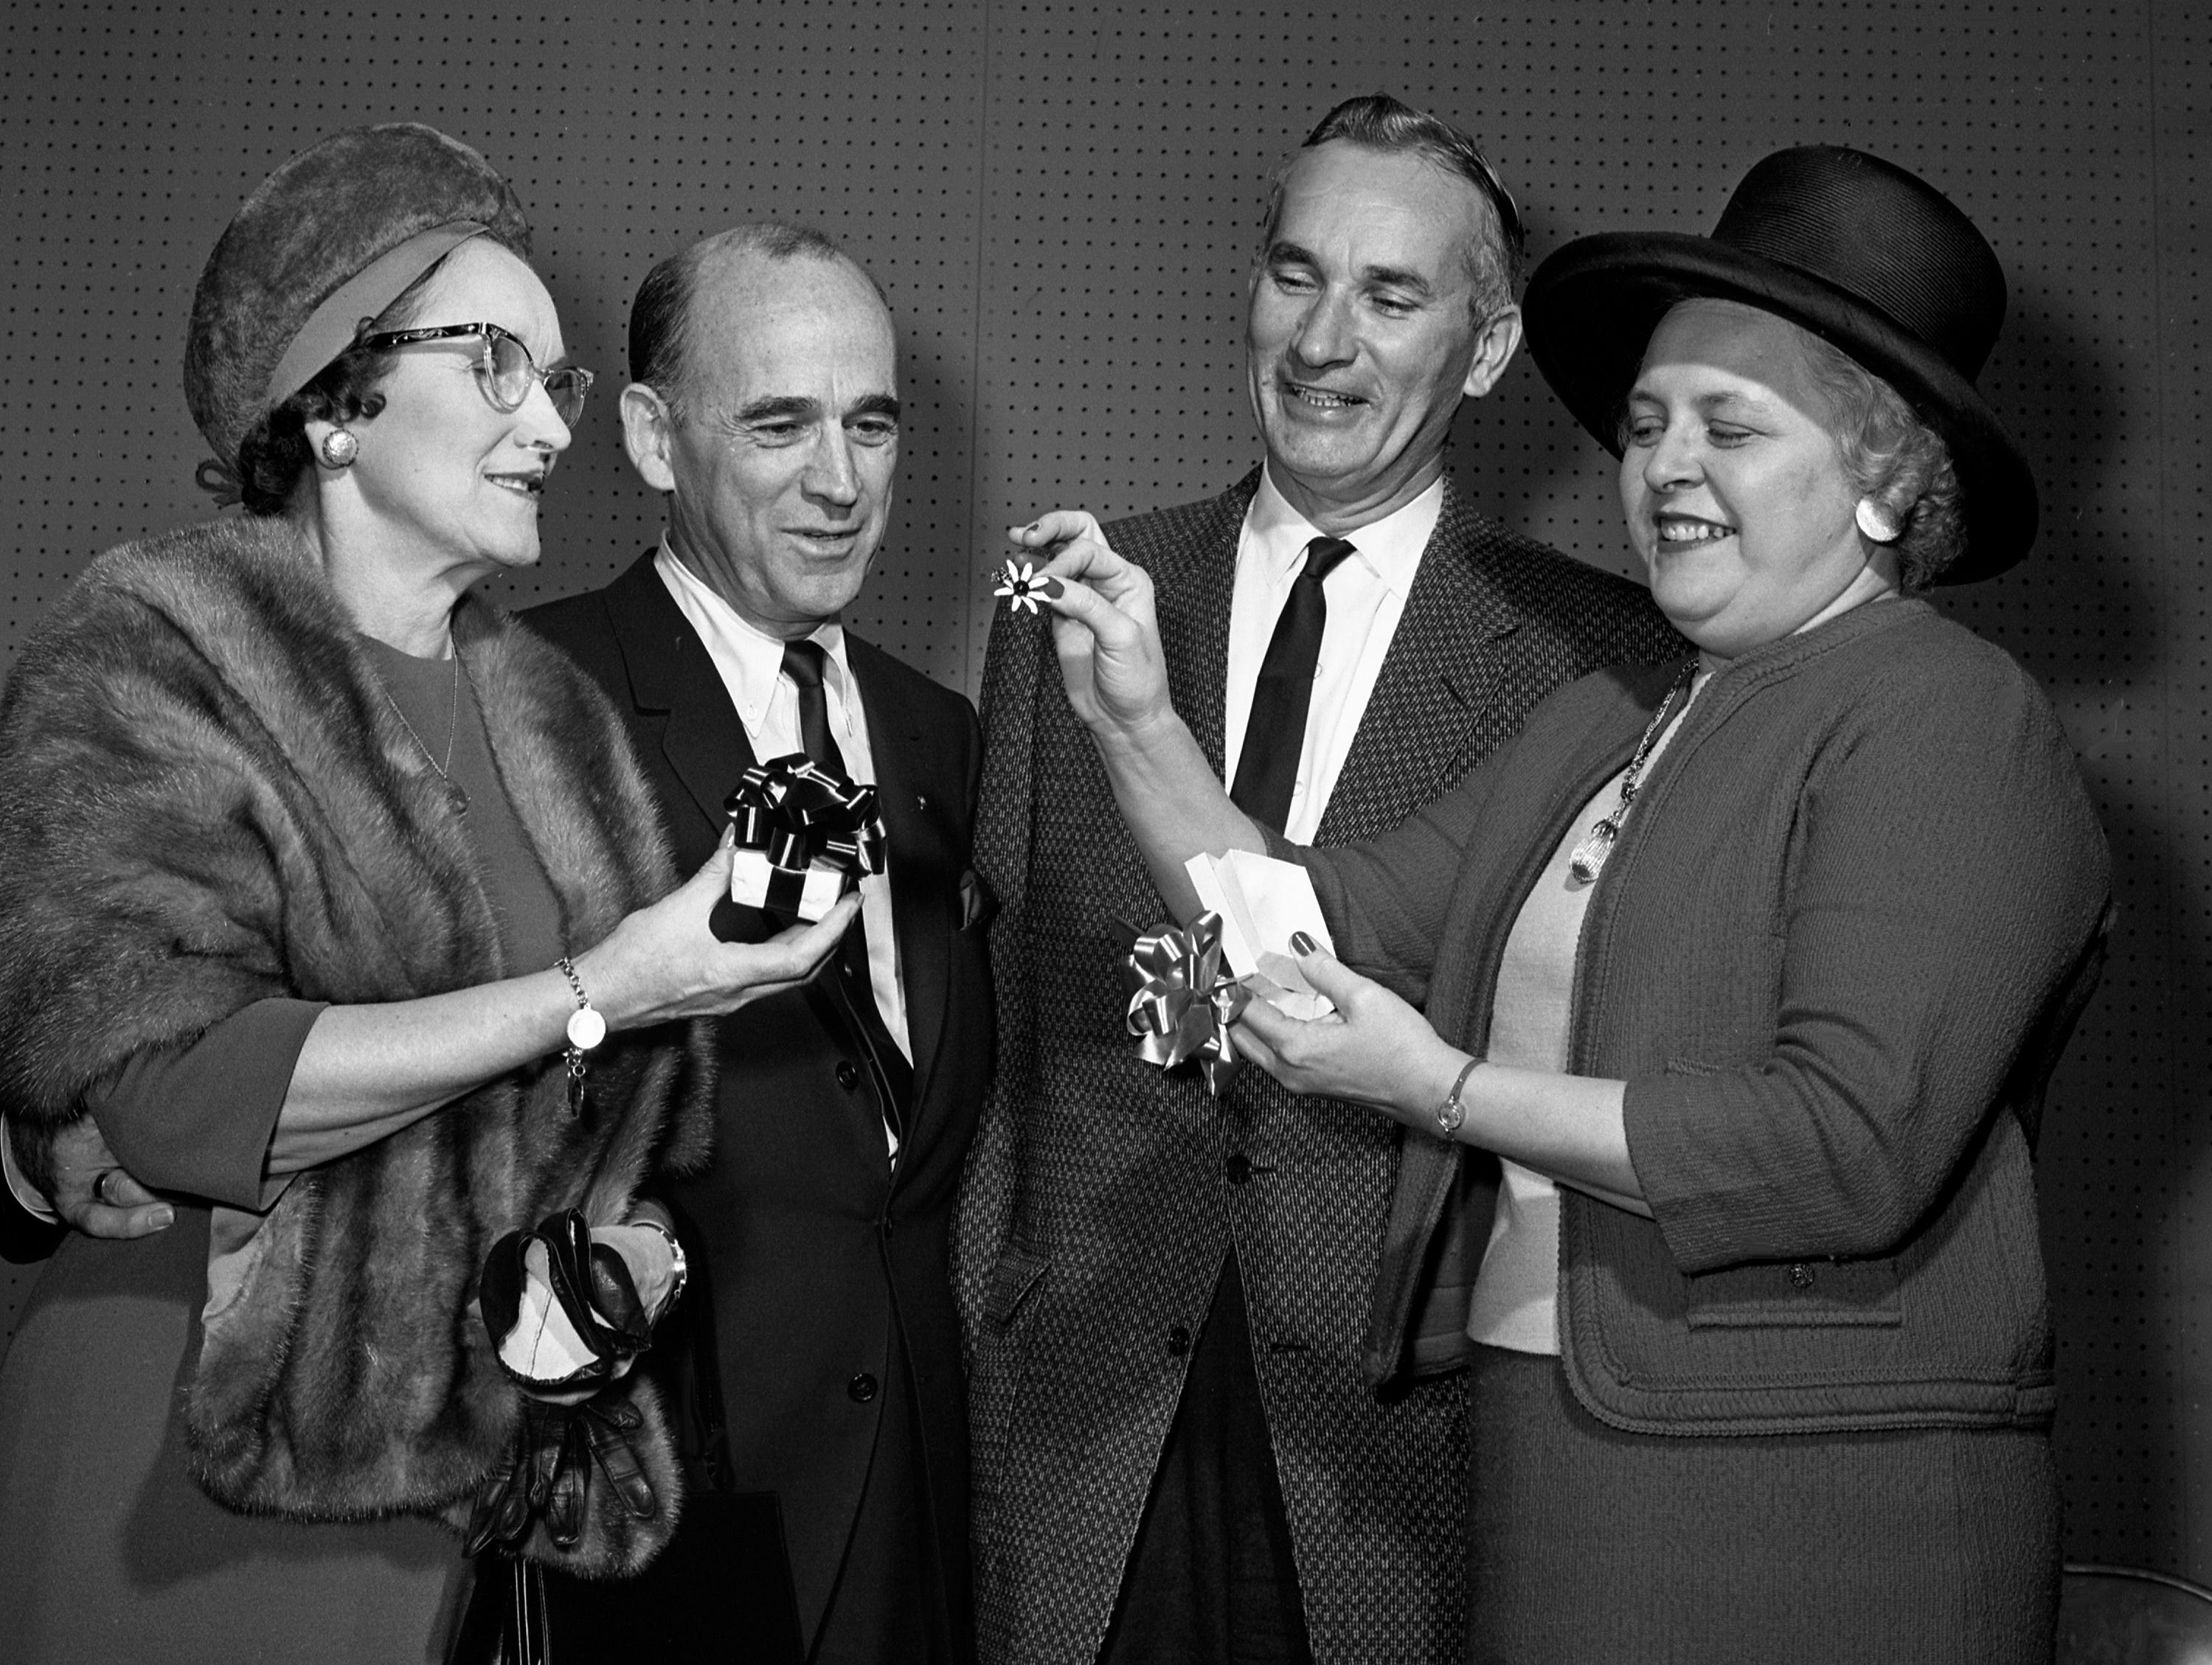 Members of the Downtown Lion's Club are entertaining at a Valentine party at the Top of the Plaza at Belle Meade Plaza honoring their wives Feb. 11, 1965. Admiring favors presented the ladies are Mrs. and Mr. Fred Waller and Mr. and Mrs. Wade Foster.